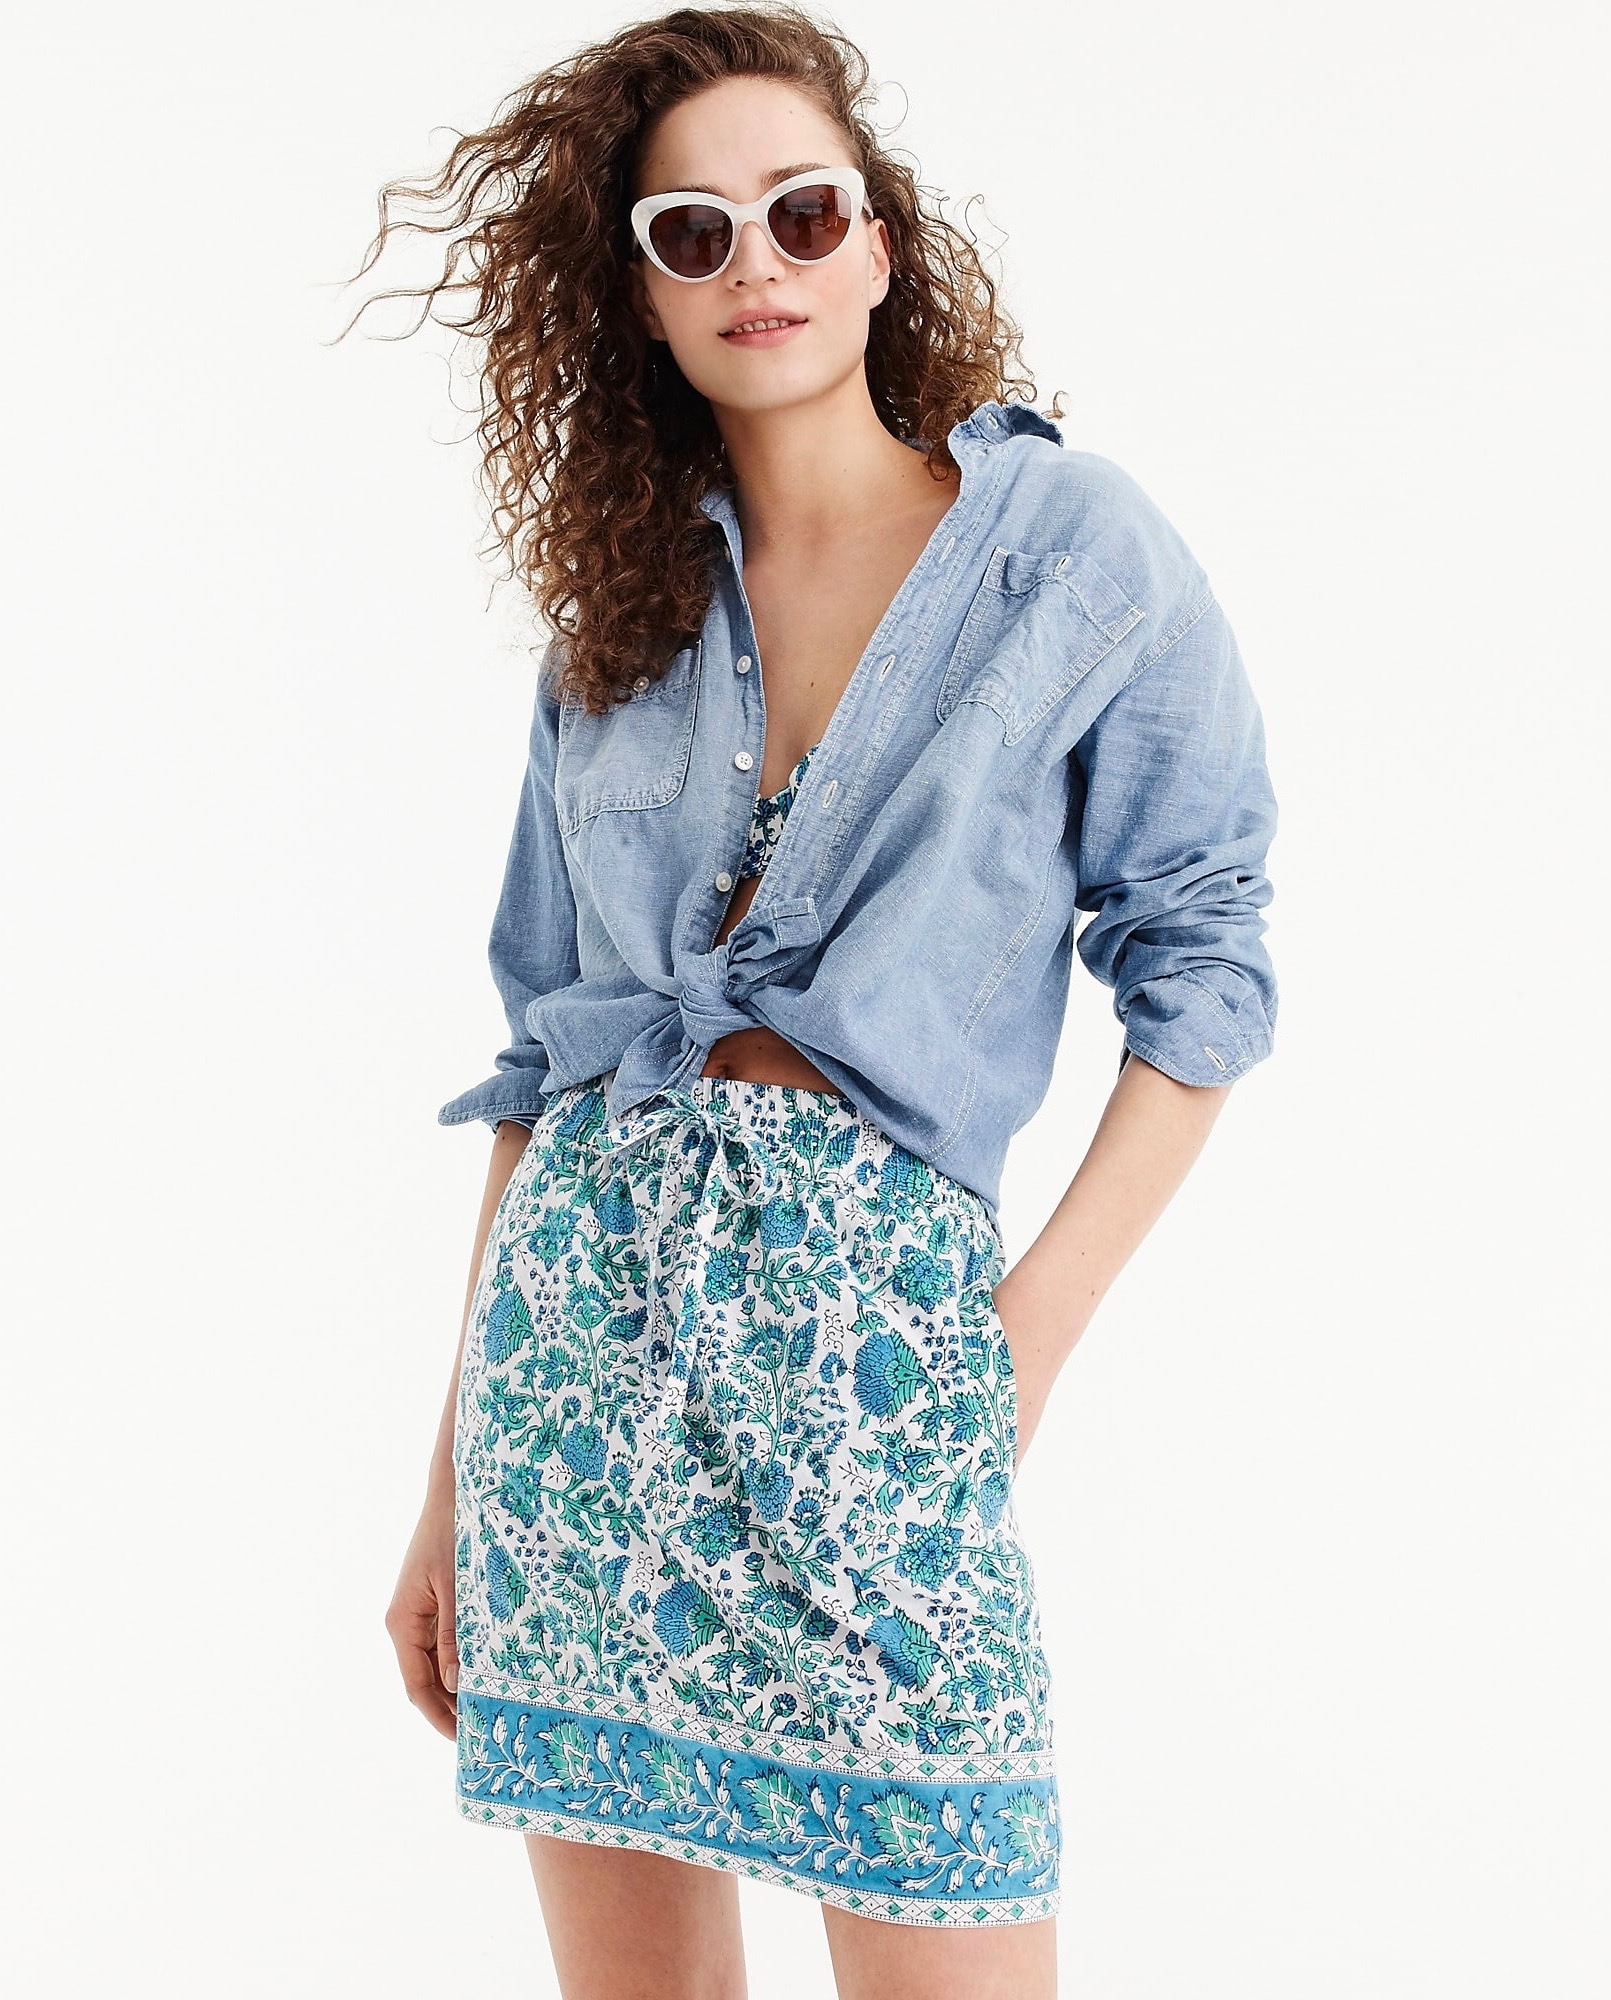 Floral Blockprint Blue Green Skirt Chambray Top White Cat-Eye Sunglasses